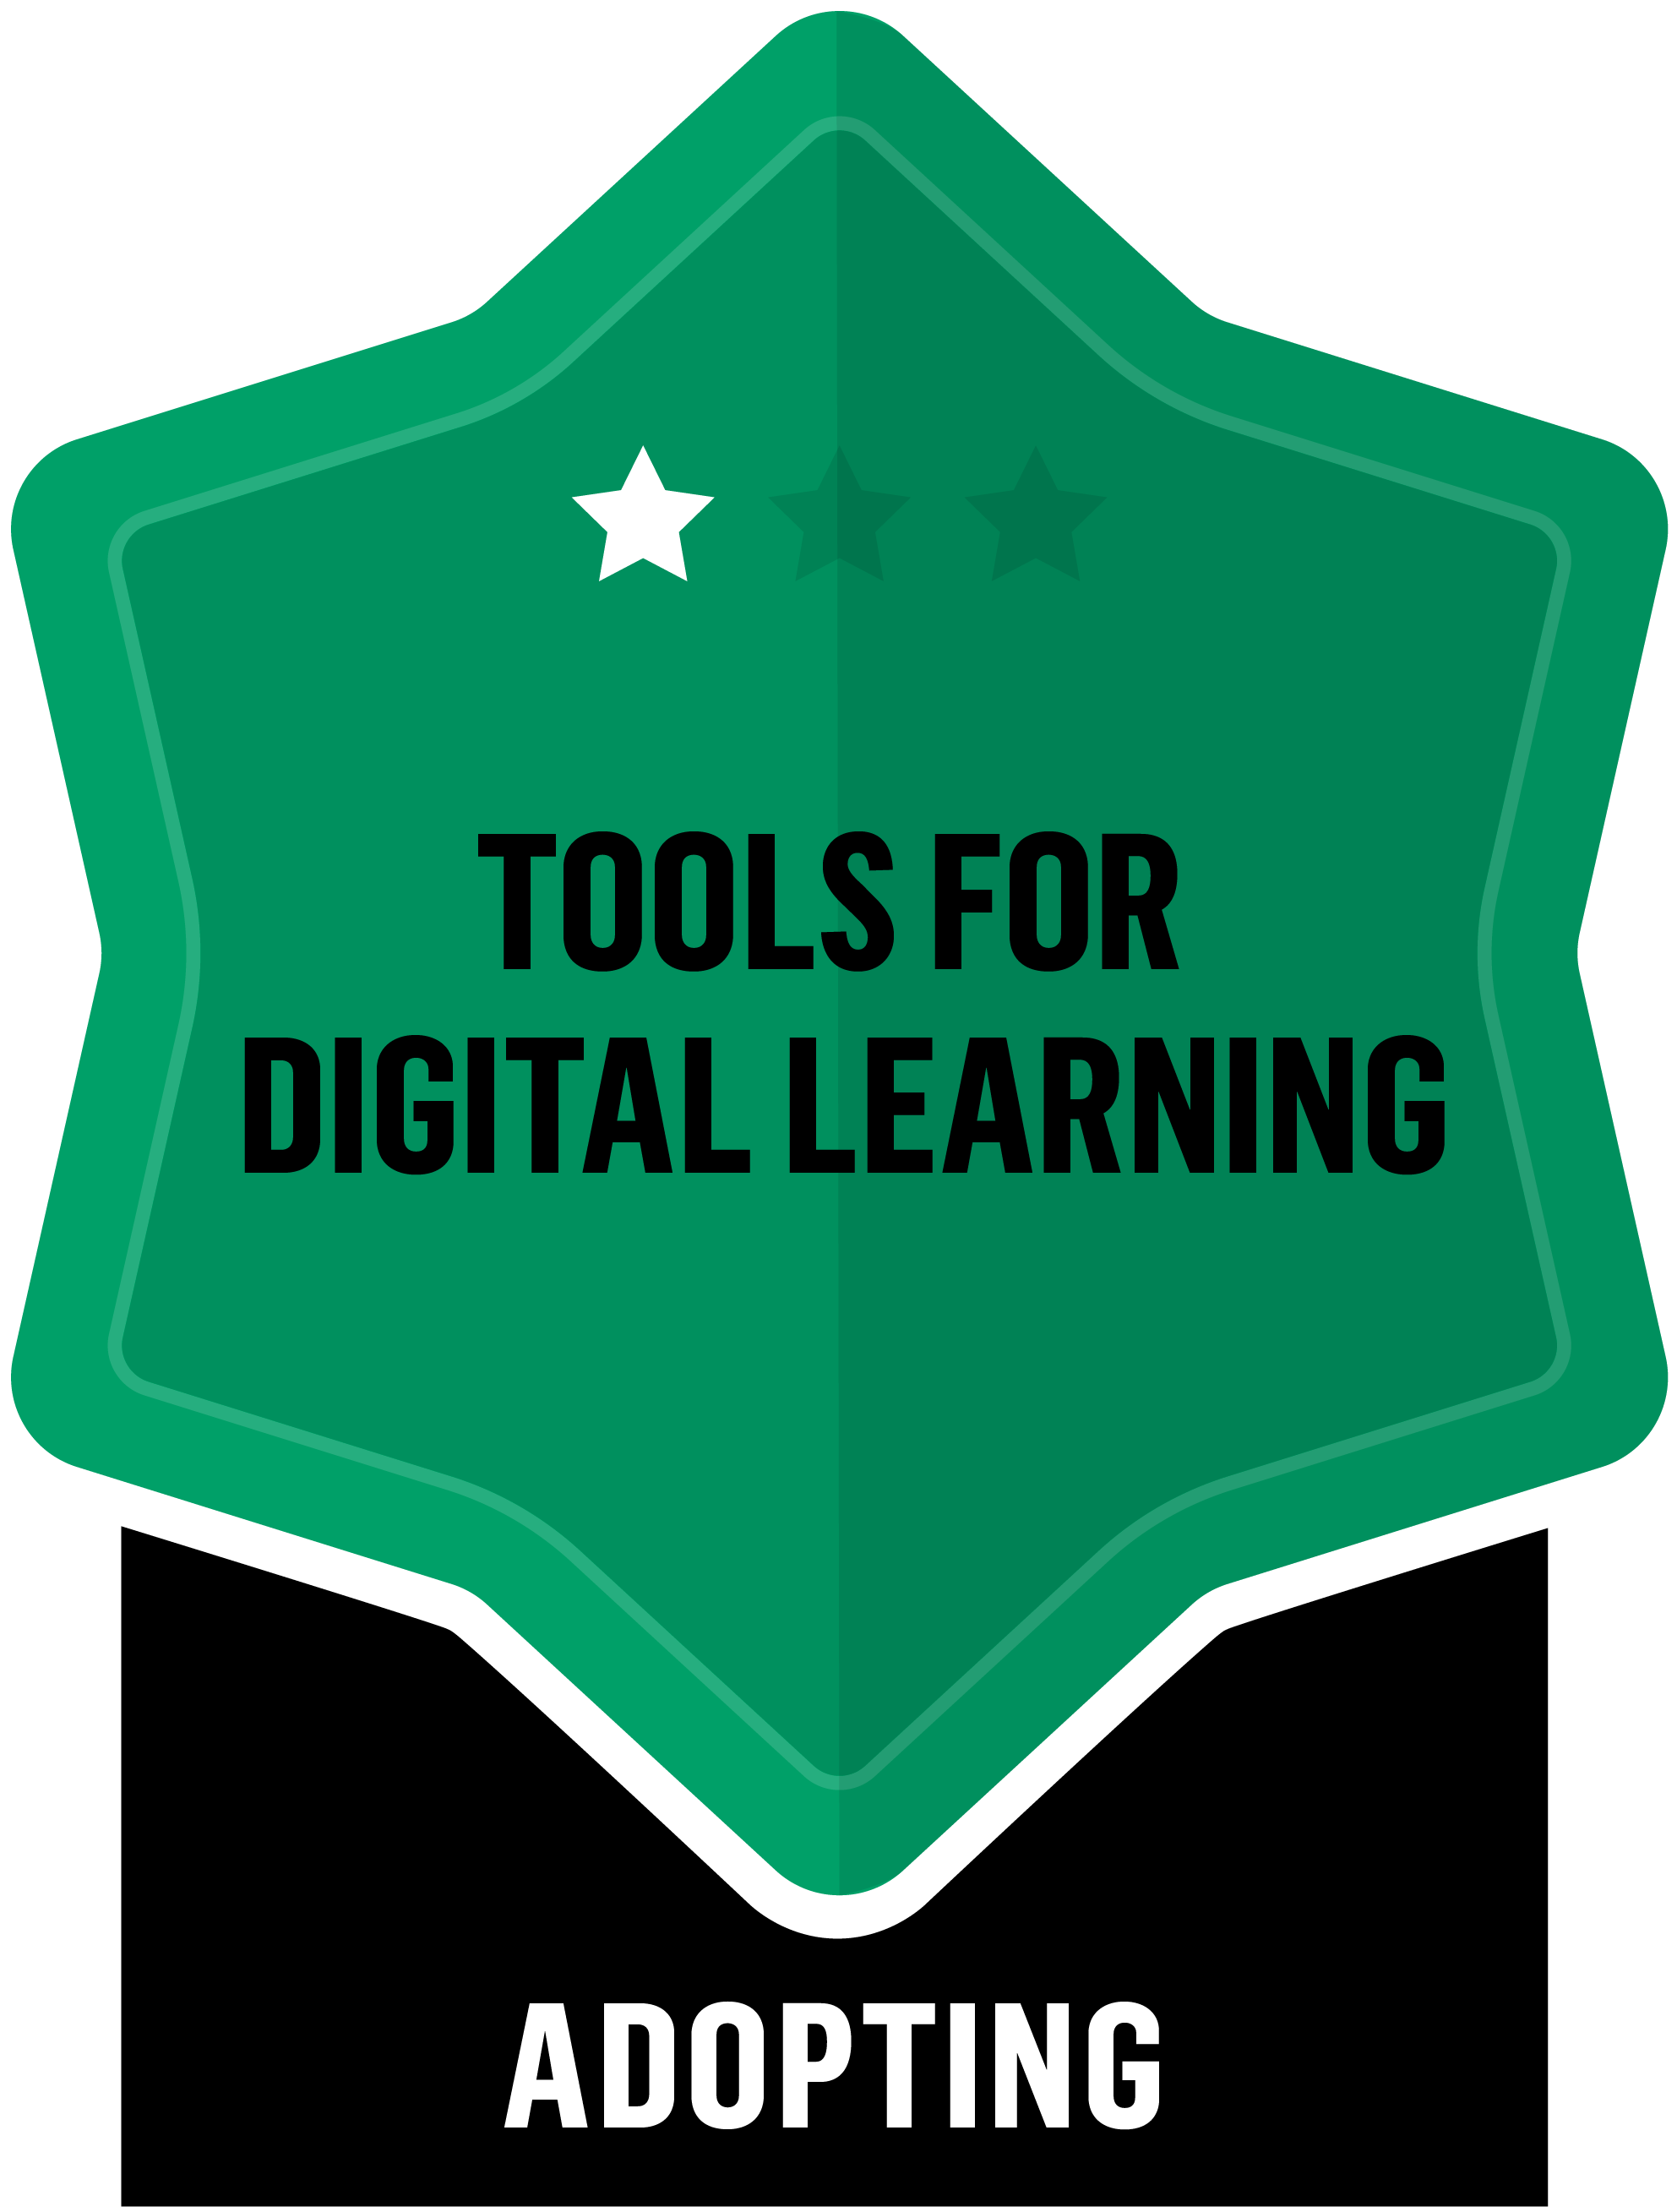 Tools for digital learning - Adopting